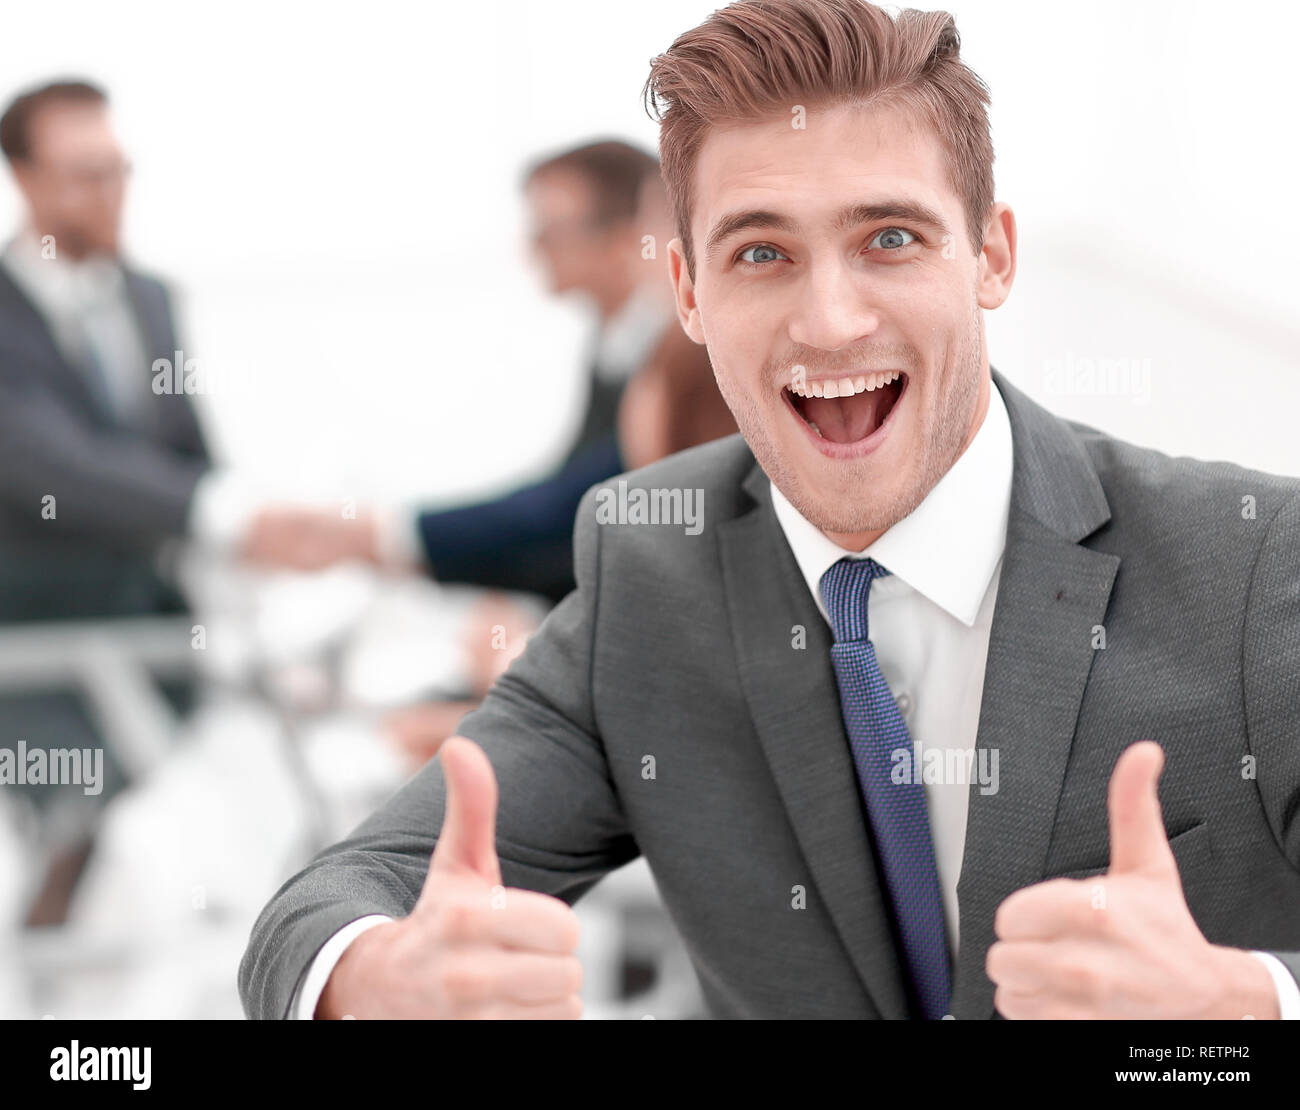 happy businessman showing thumbs up - Stock Image